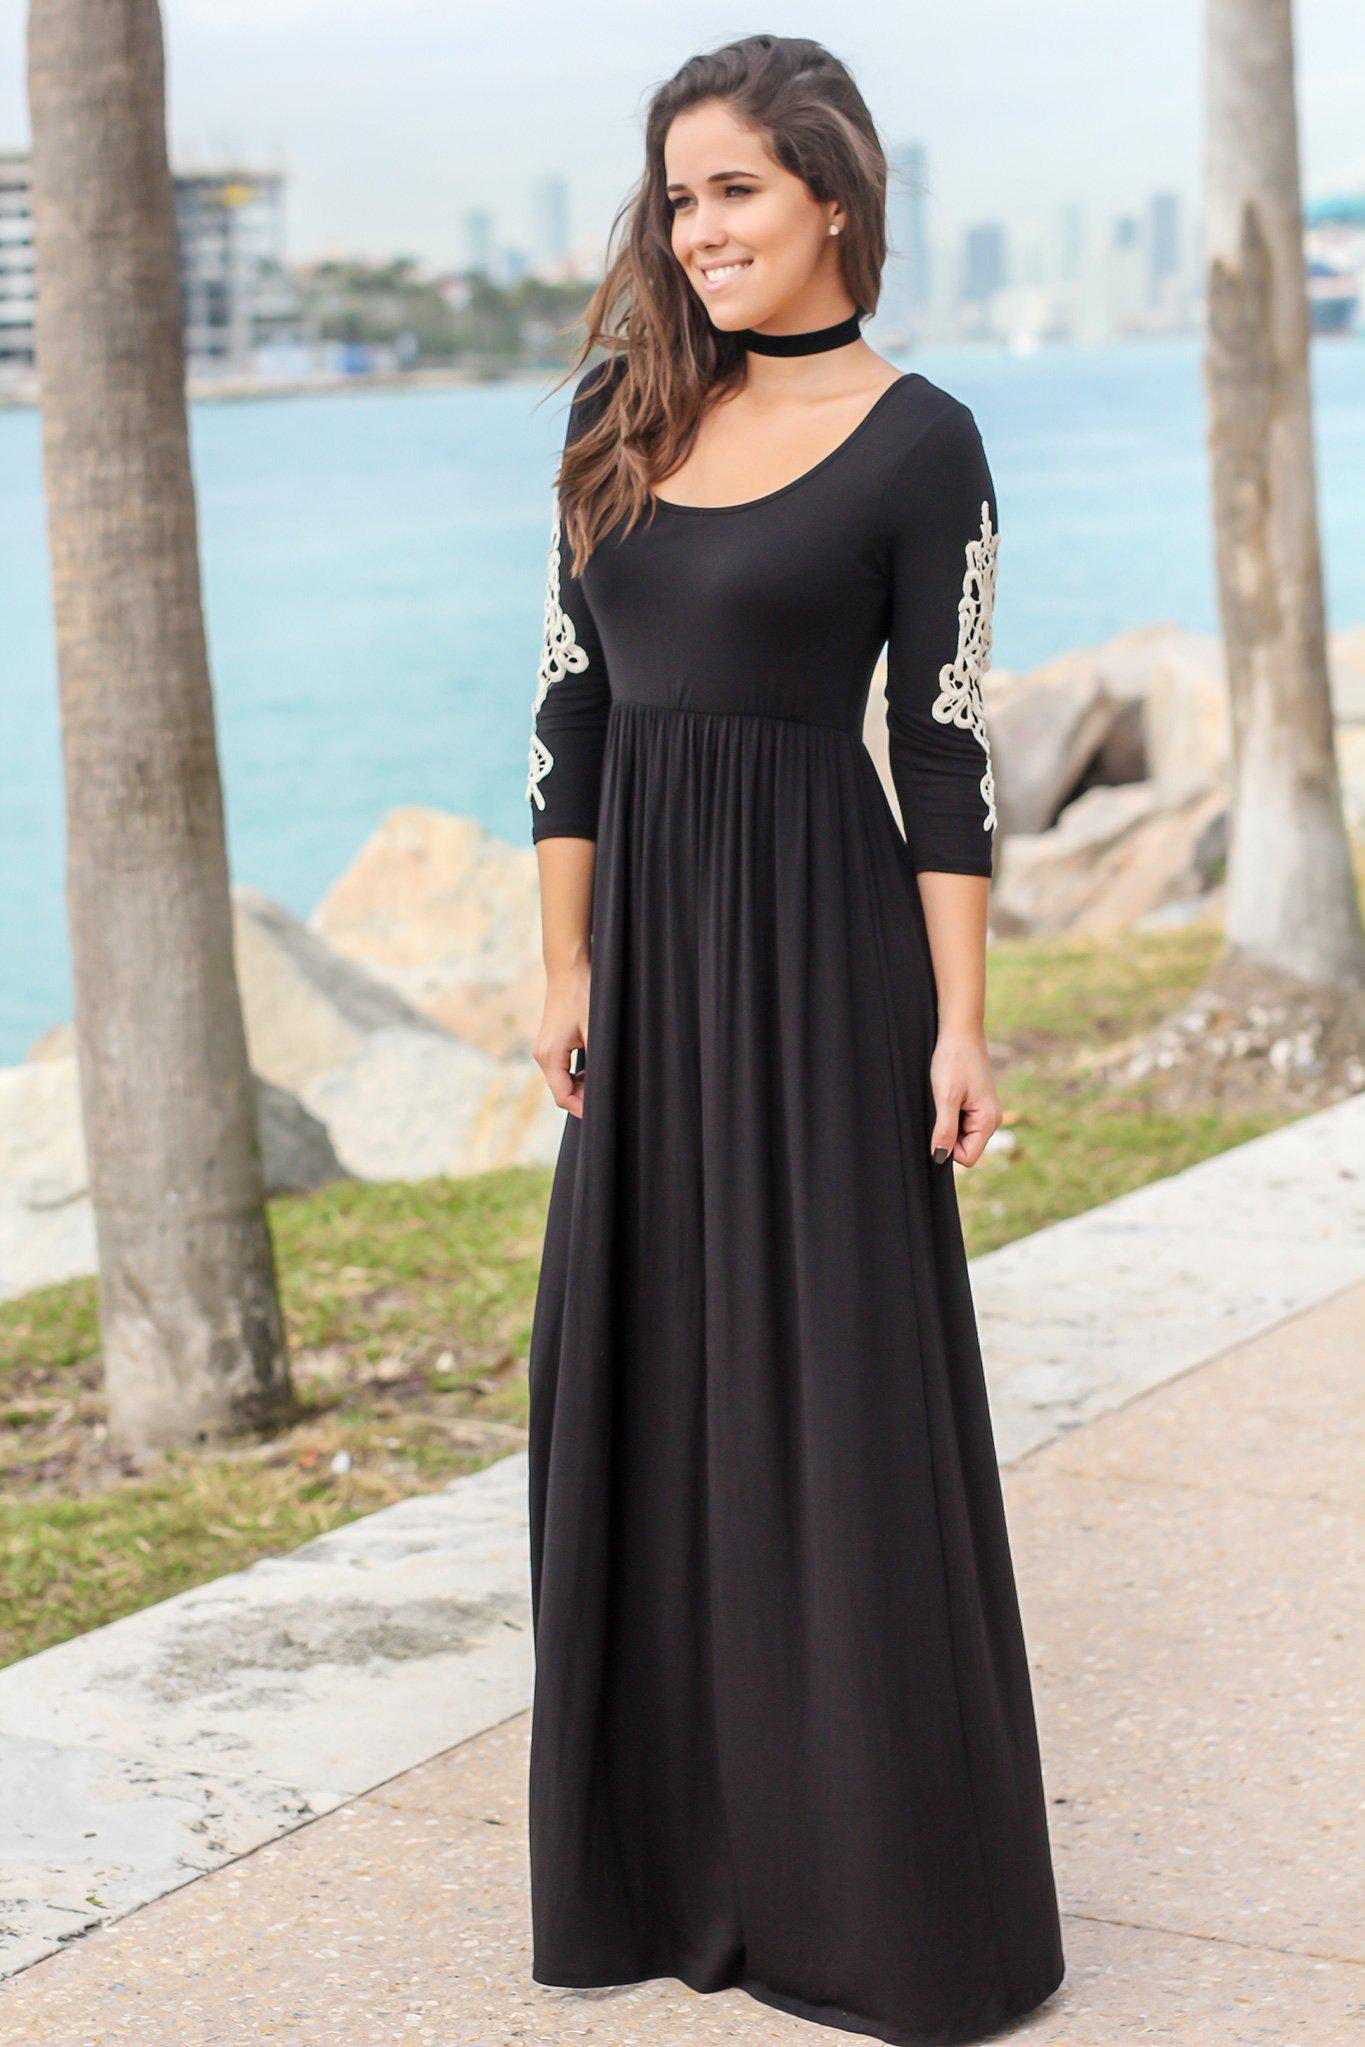 Black Maxi Dress with 3/4 Sleeves and Crochet Detail